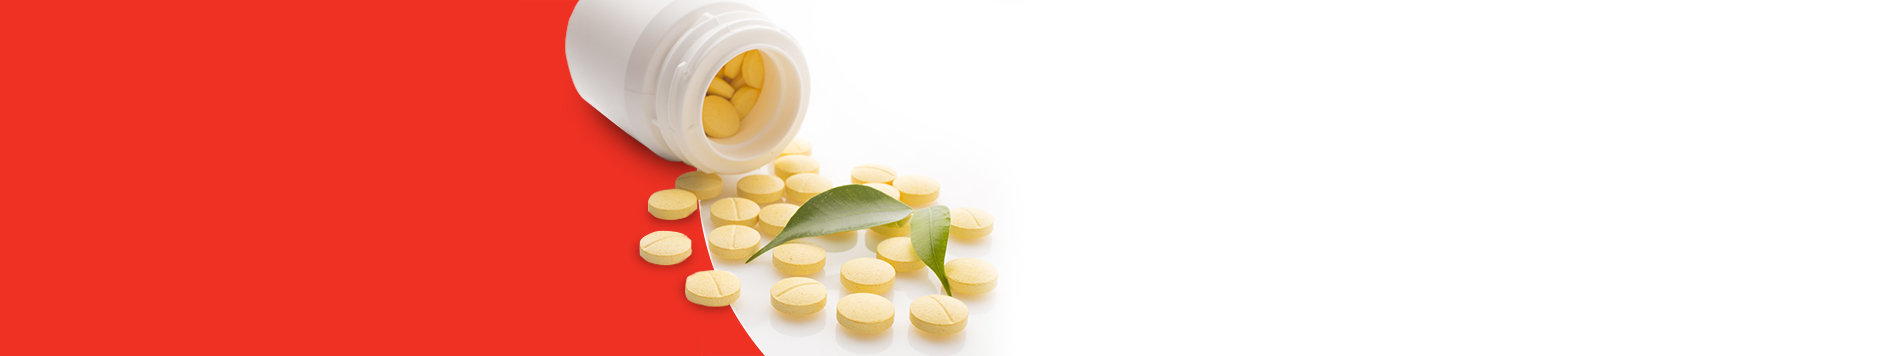 Nutritional supplements and vitamins תוספי תזונה